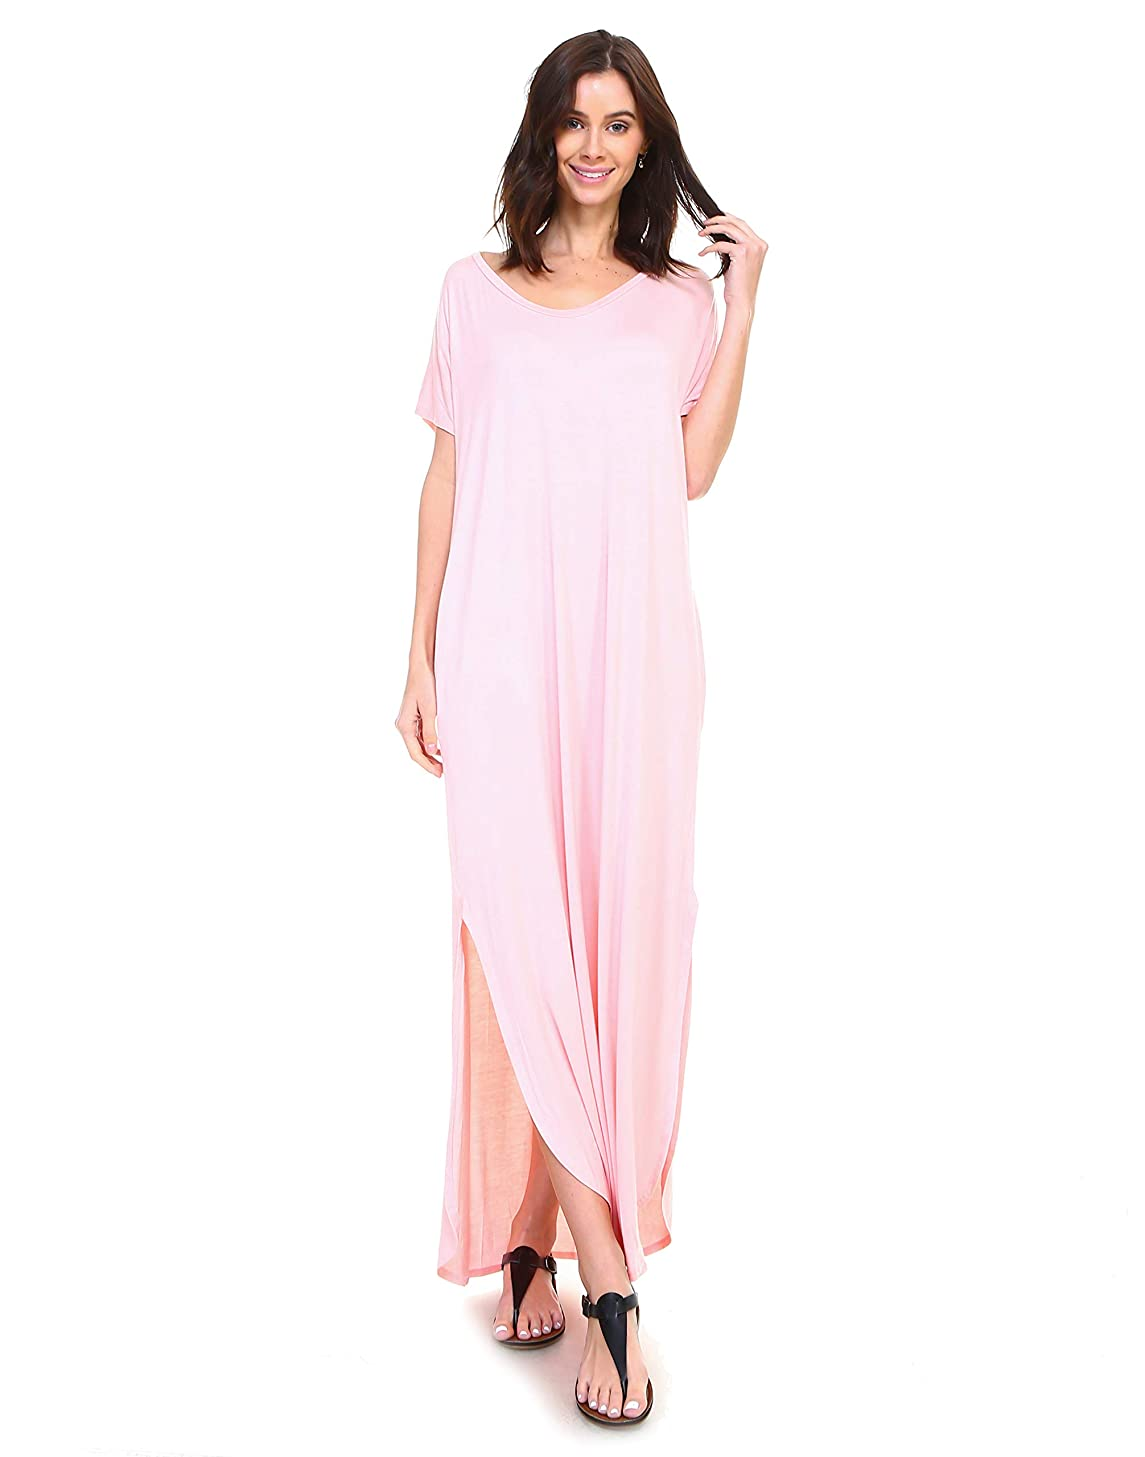 Isaac Liev Short Sleeve Maxi Dress with Pockets Loose Casual Long Dress with Scoop Neck, Splits & Side Pockets